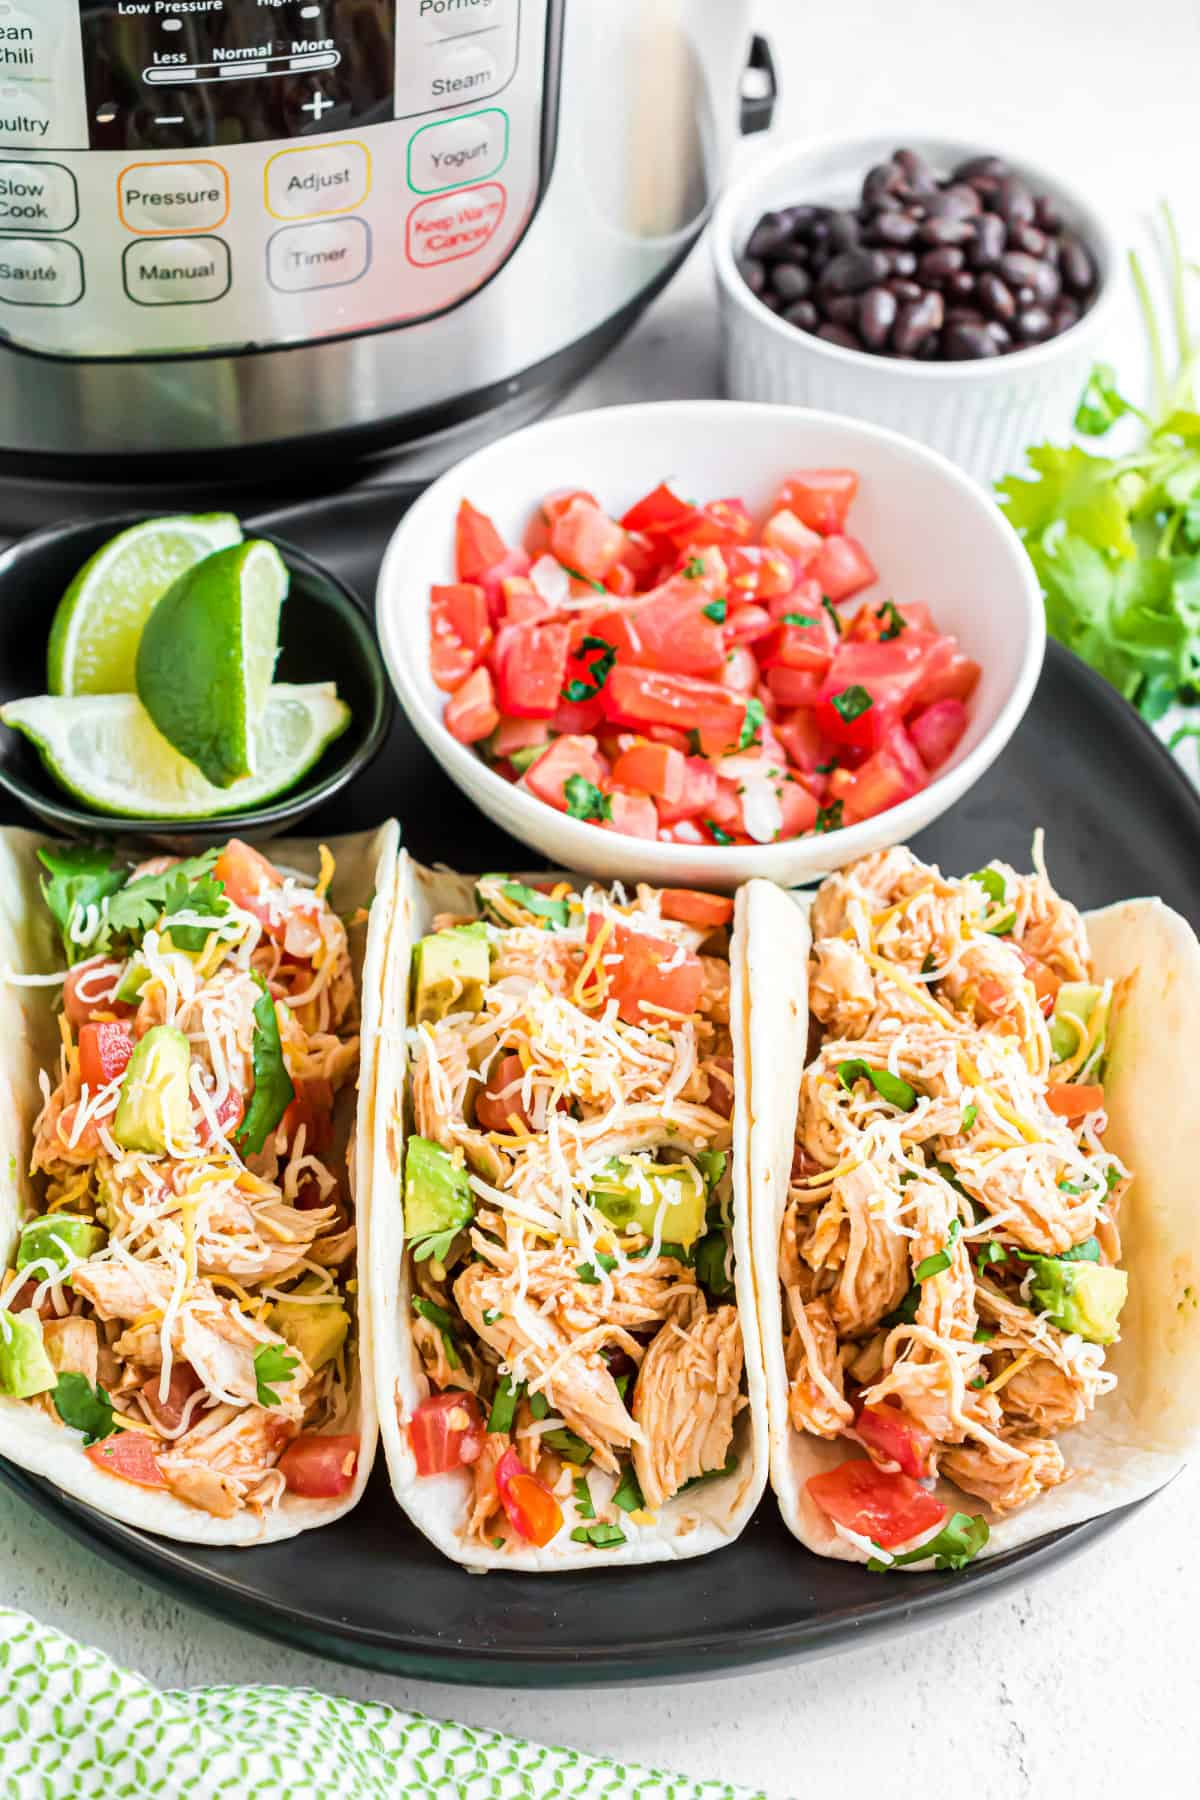 Three chicken tacos with all the fixings and instant pot in background.